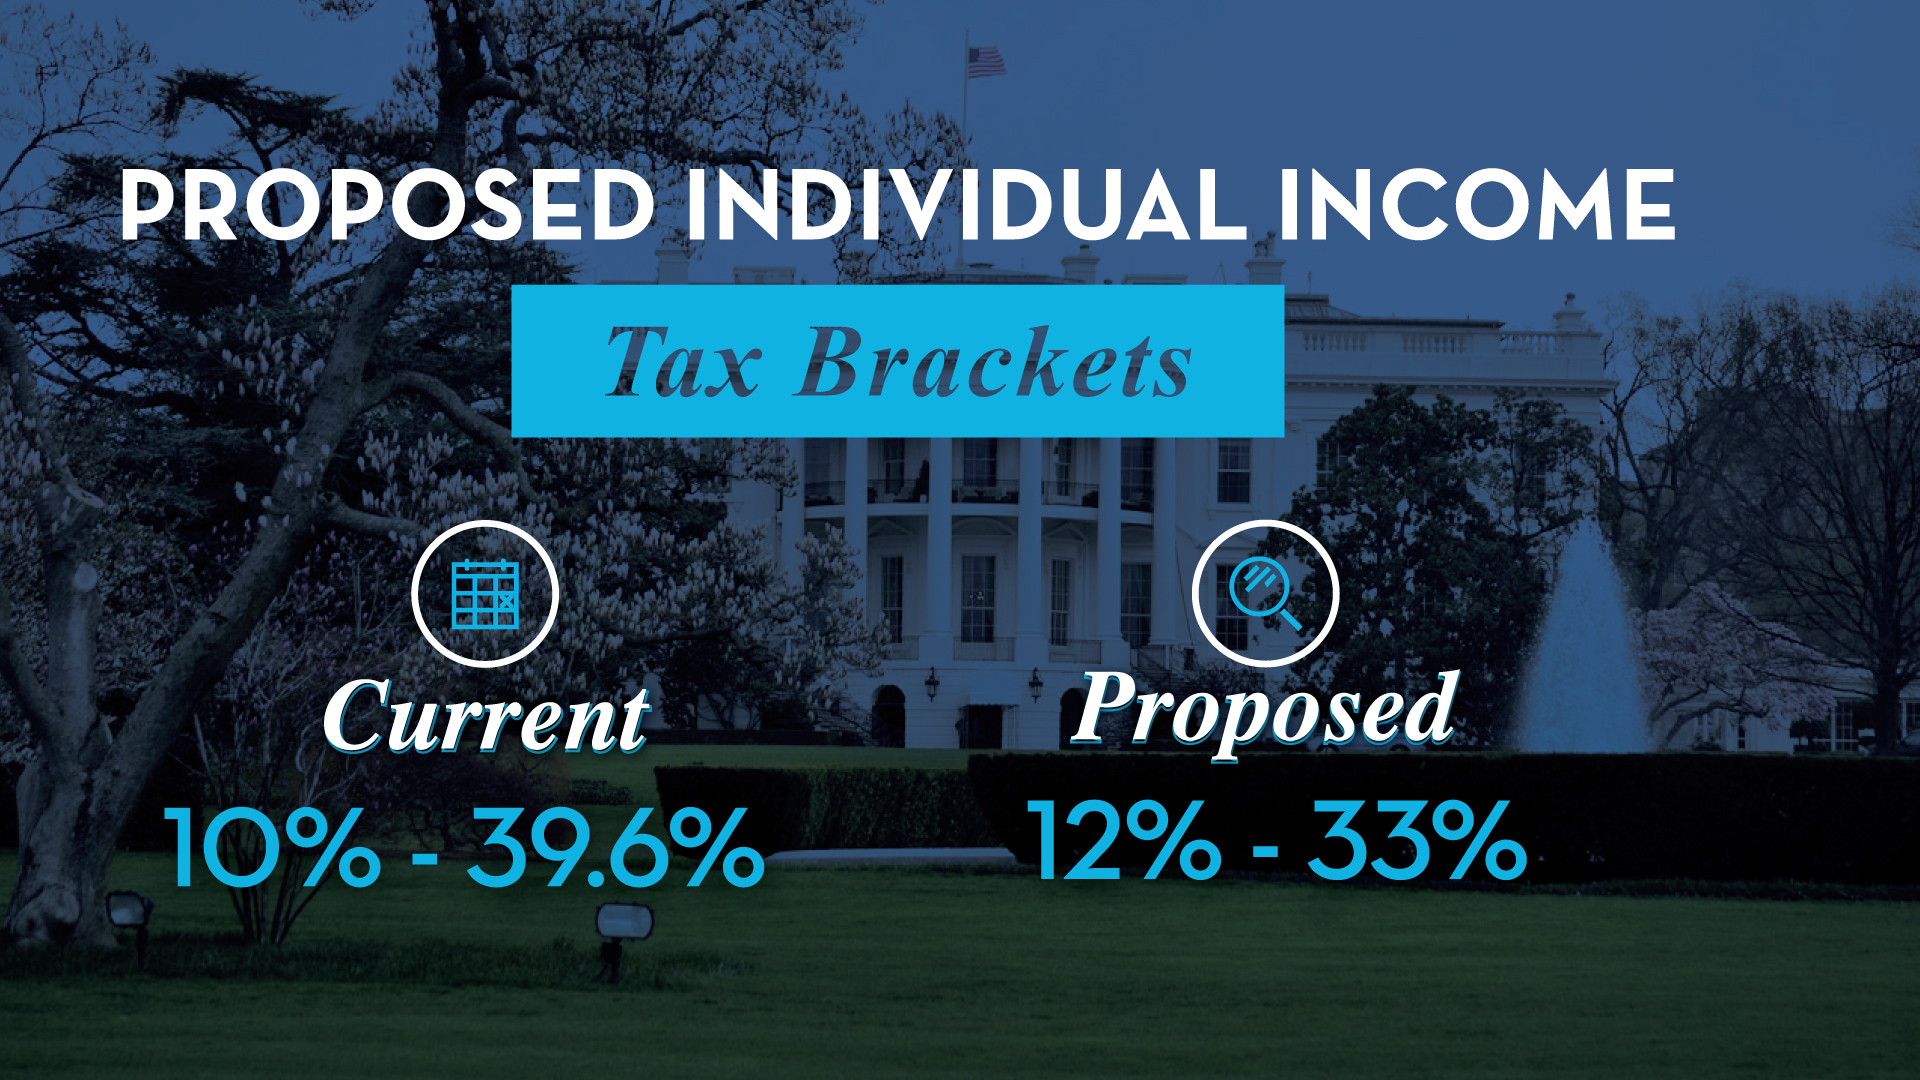 Tax-Brackets-Trump